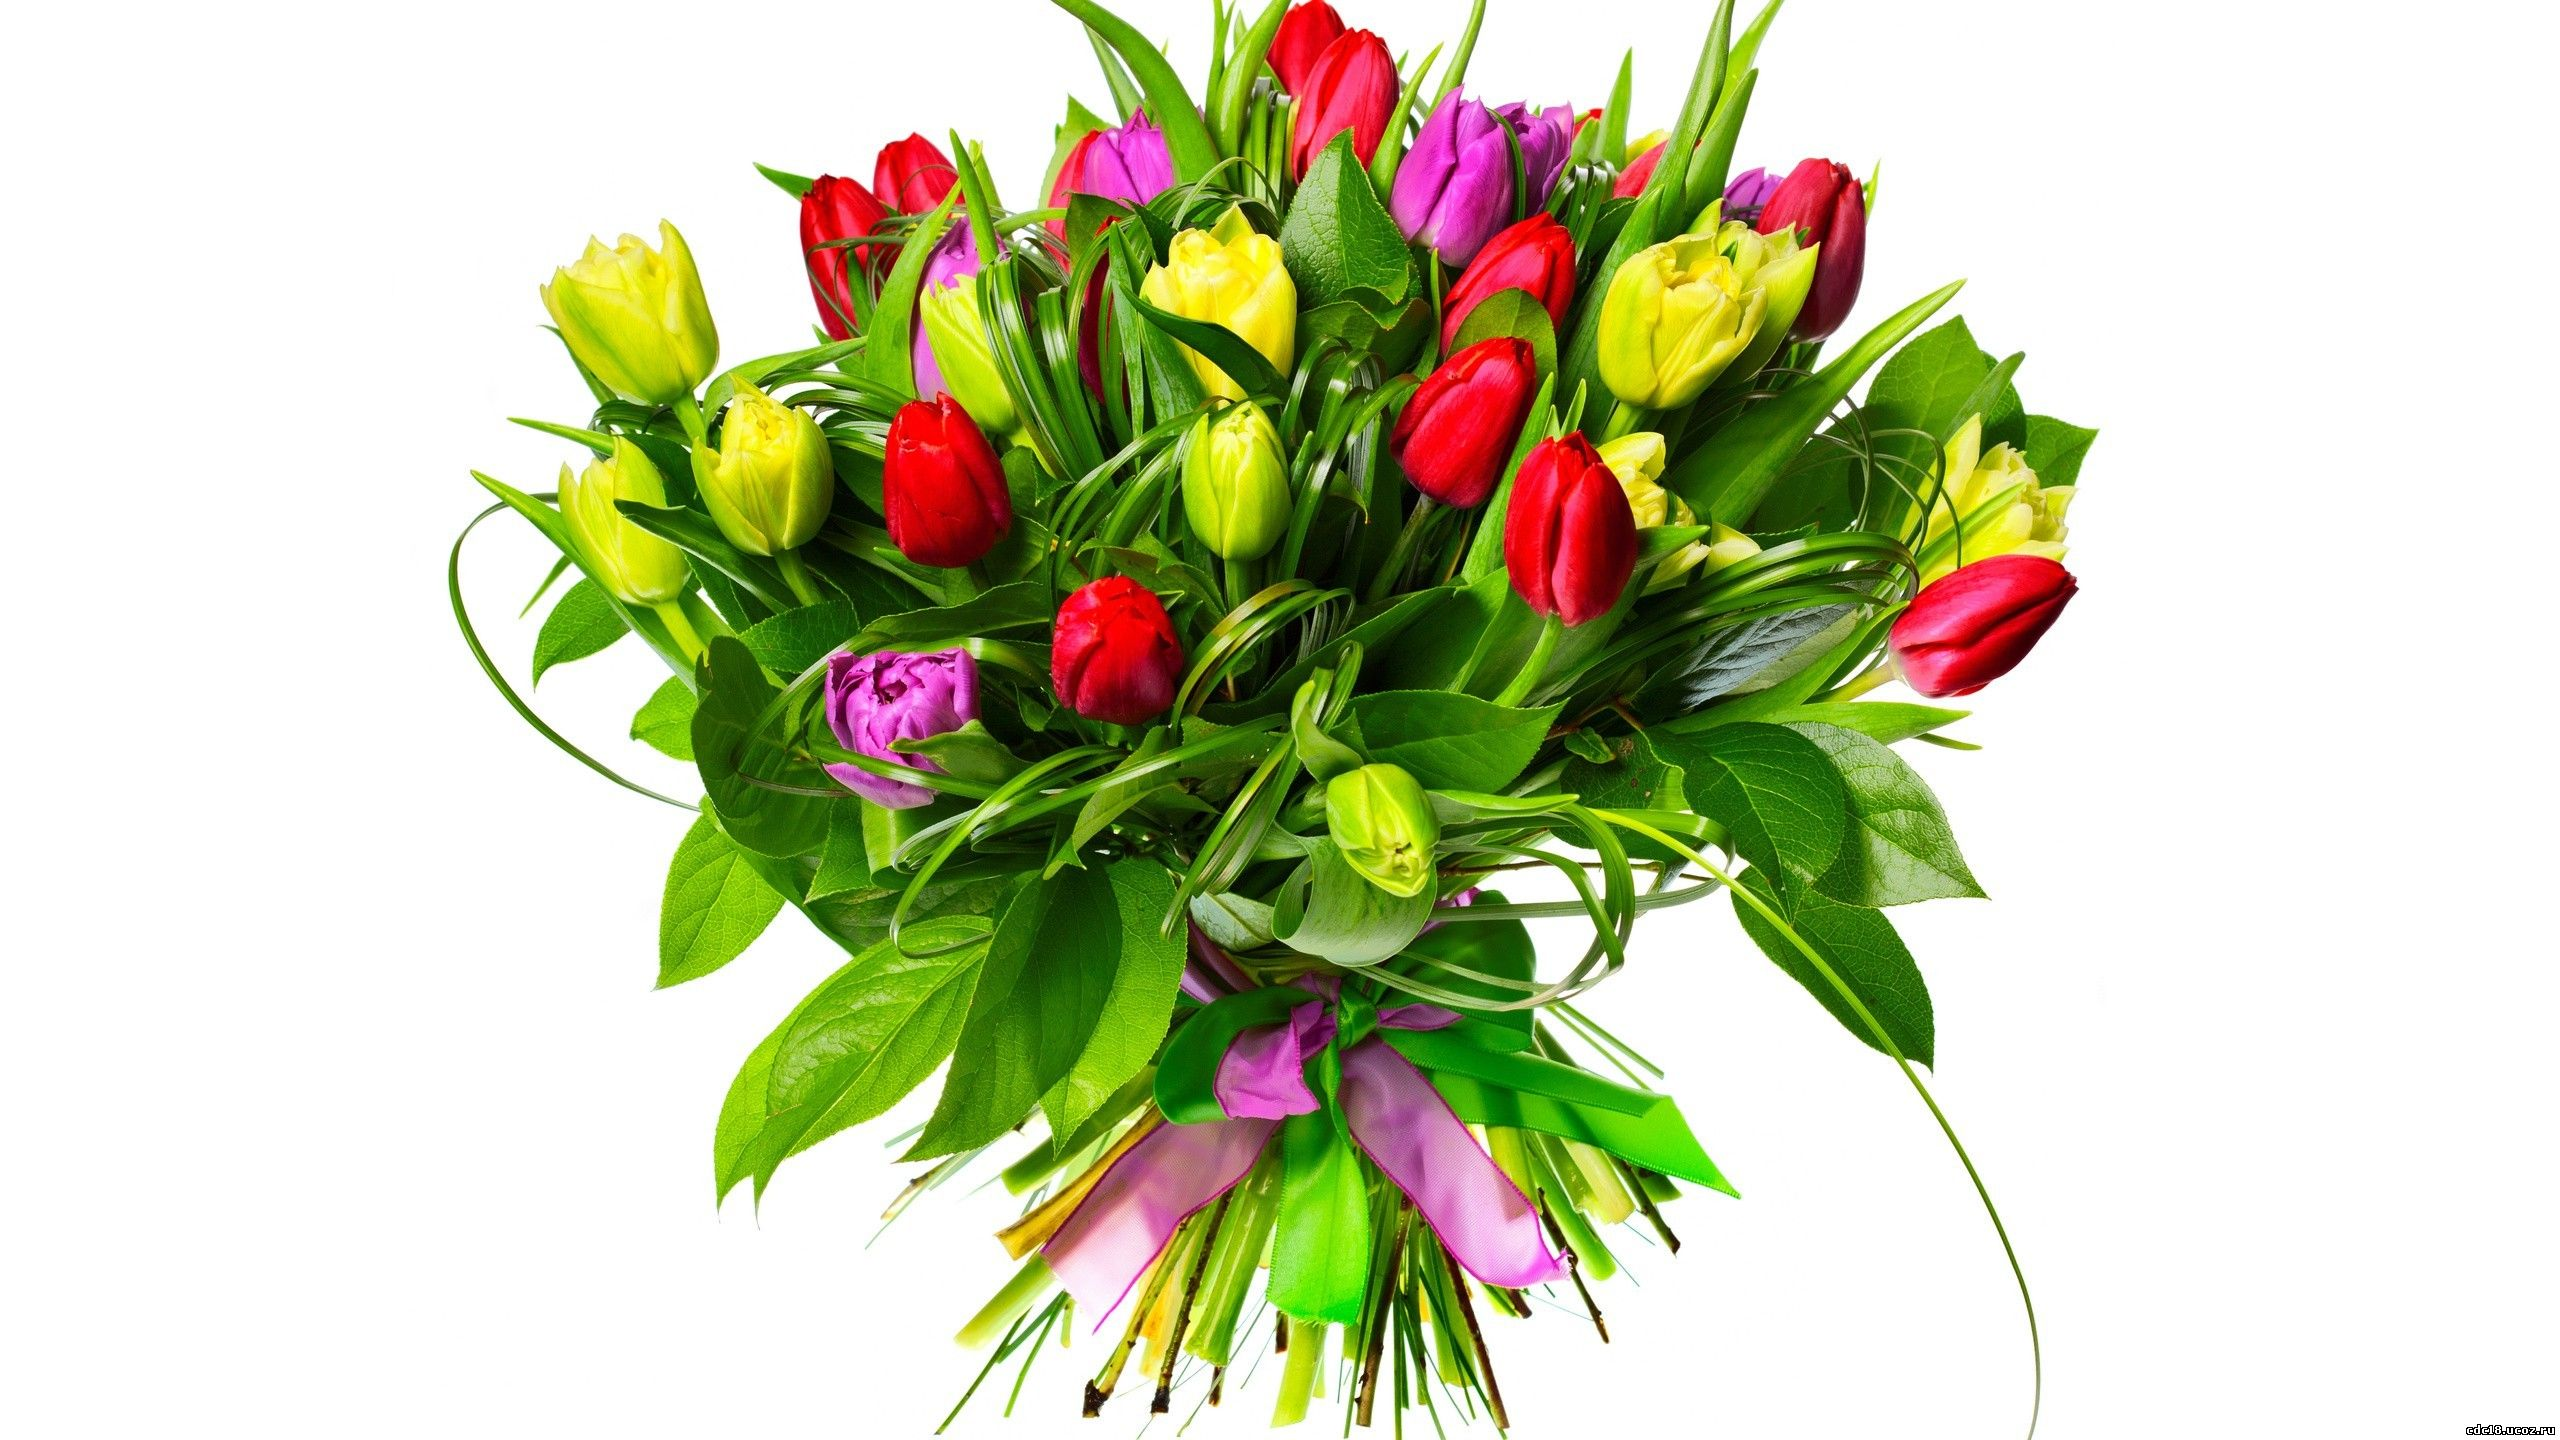 http://cdc18.ru/News/2017-2018/Mart/2560x1440-px-bouquets-flowers-tulips-1053291.jpg